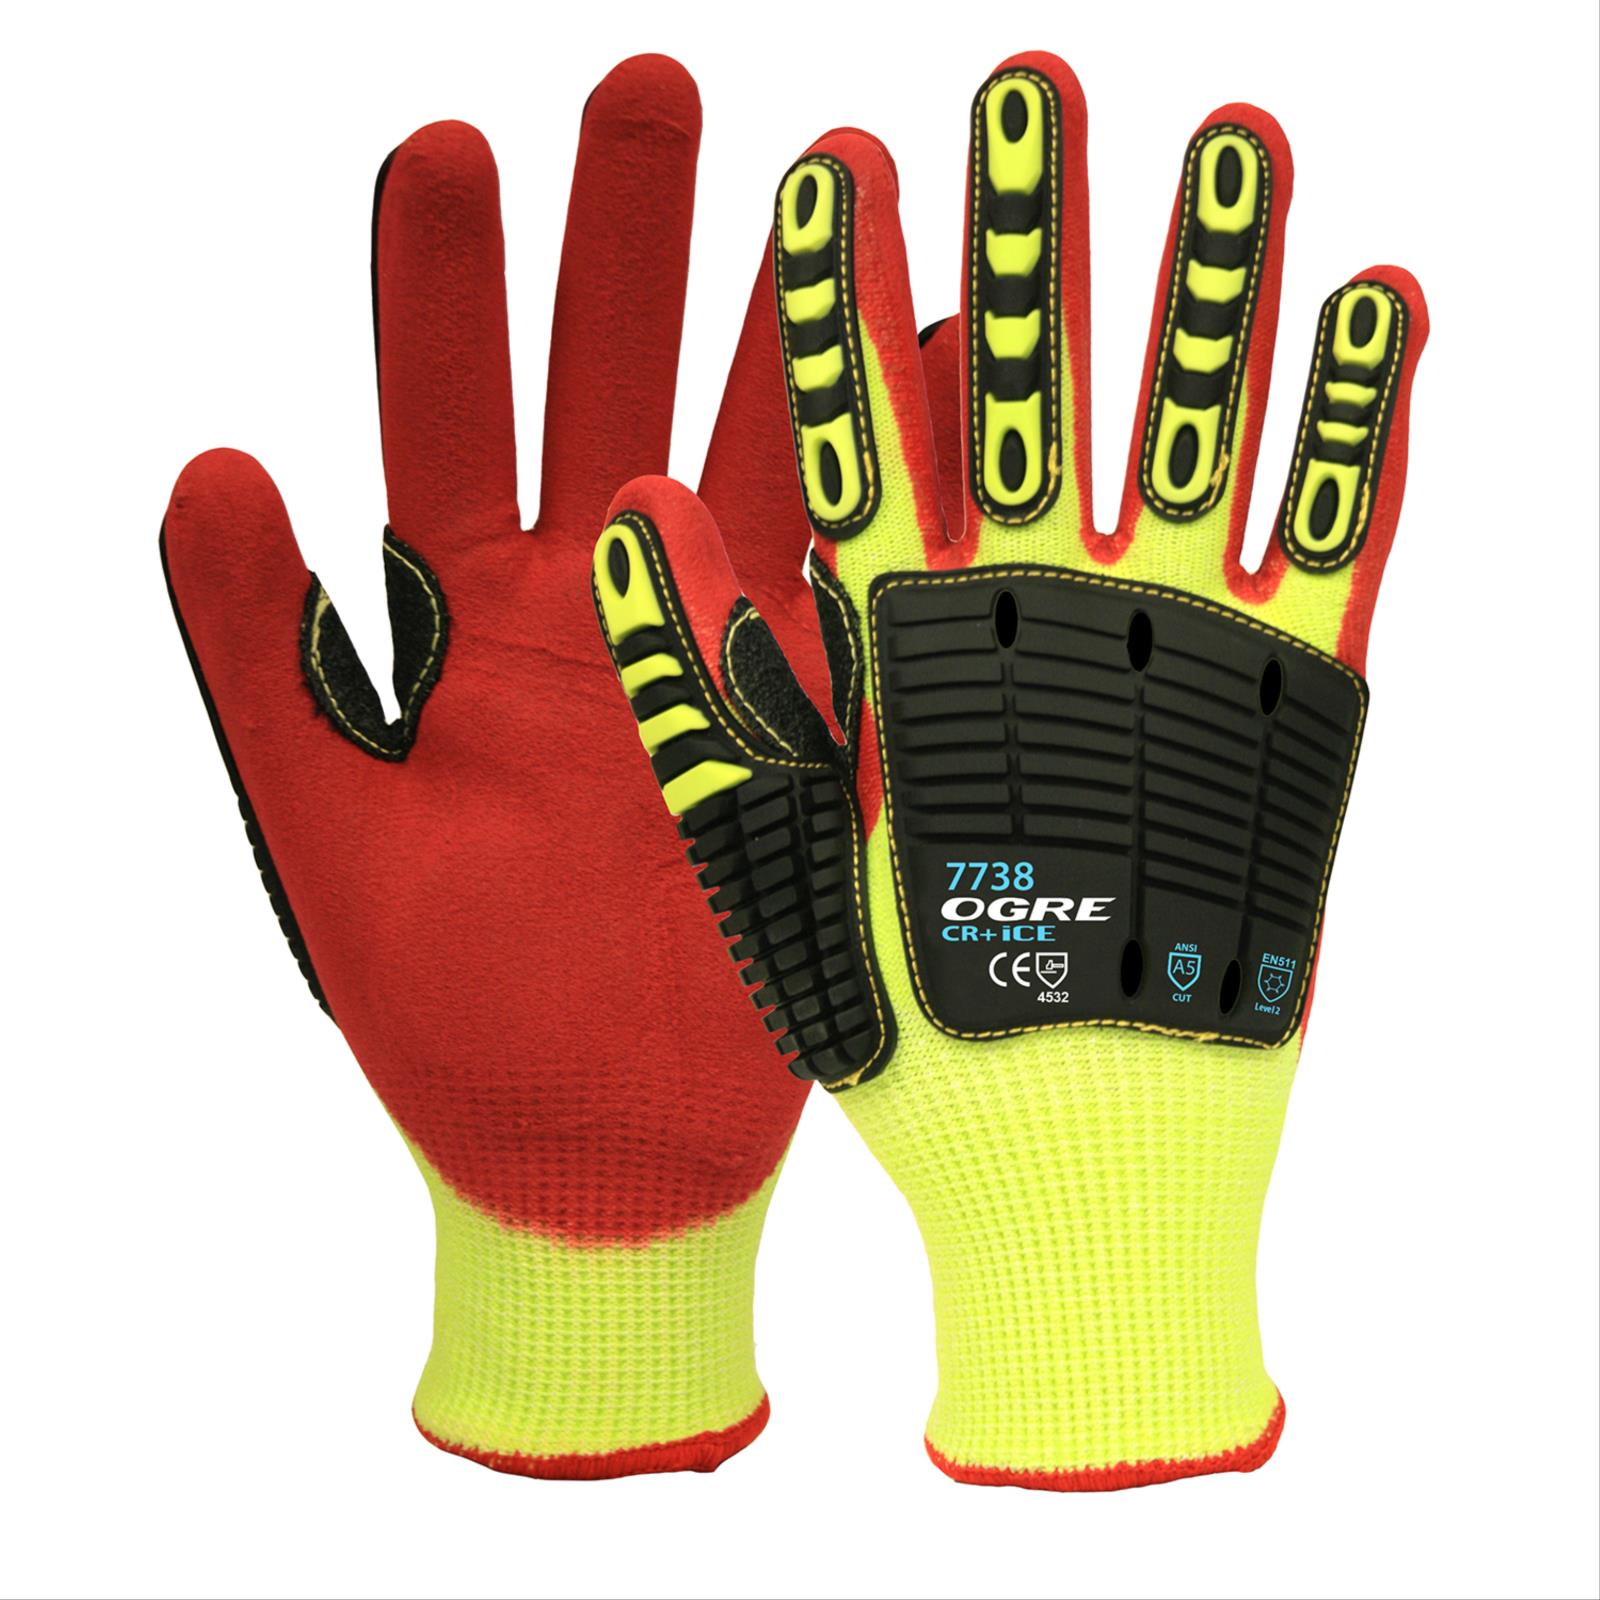 Ogre CR+ Ice™ Gloves